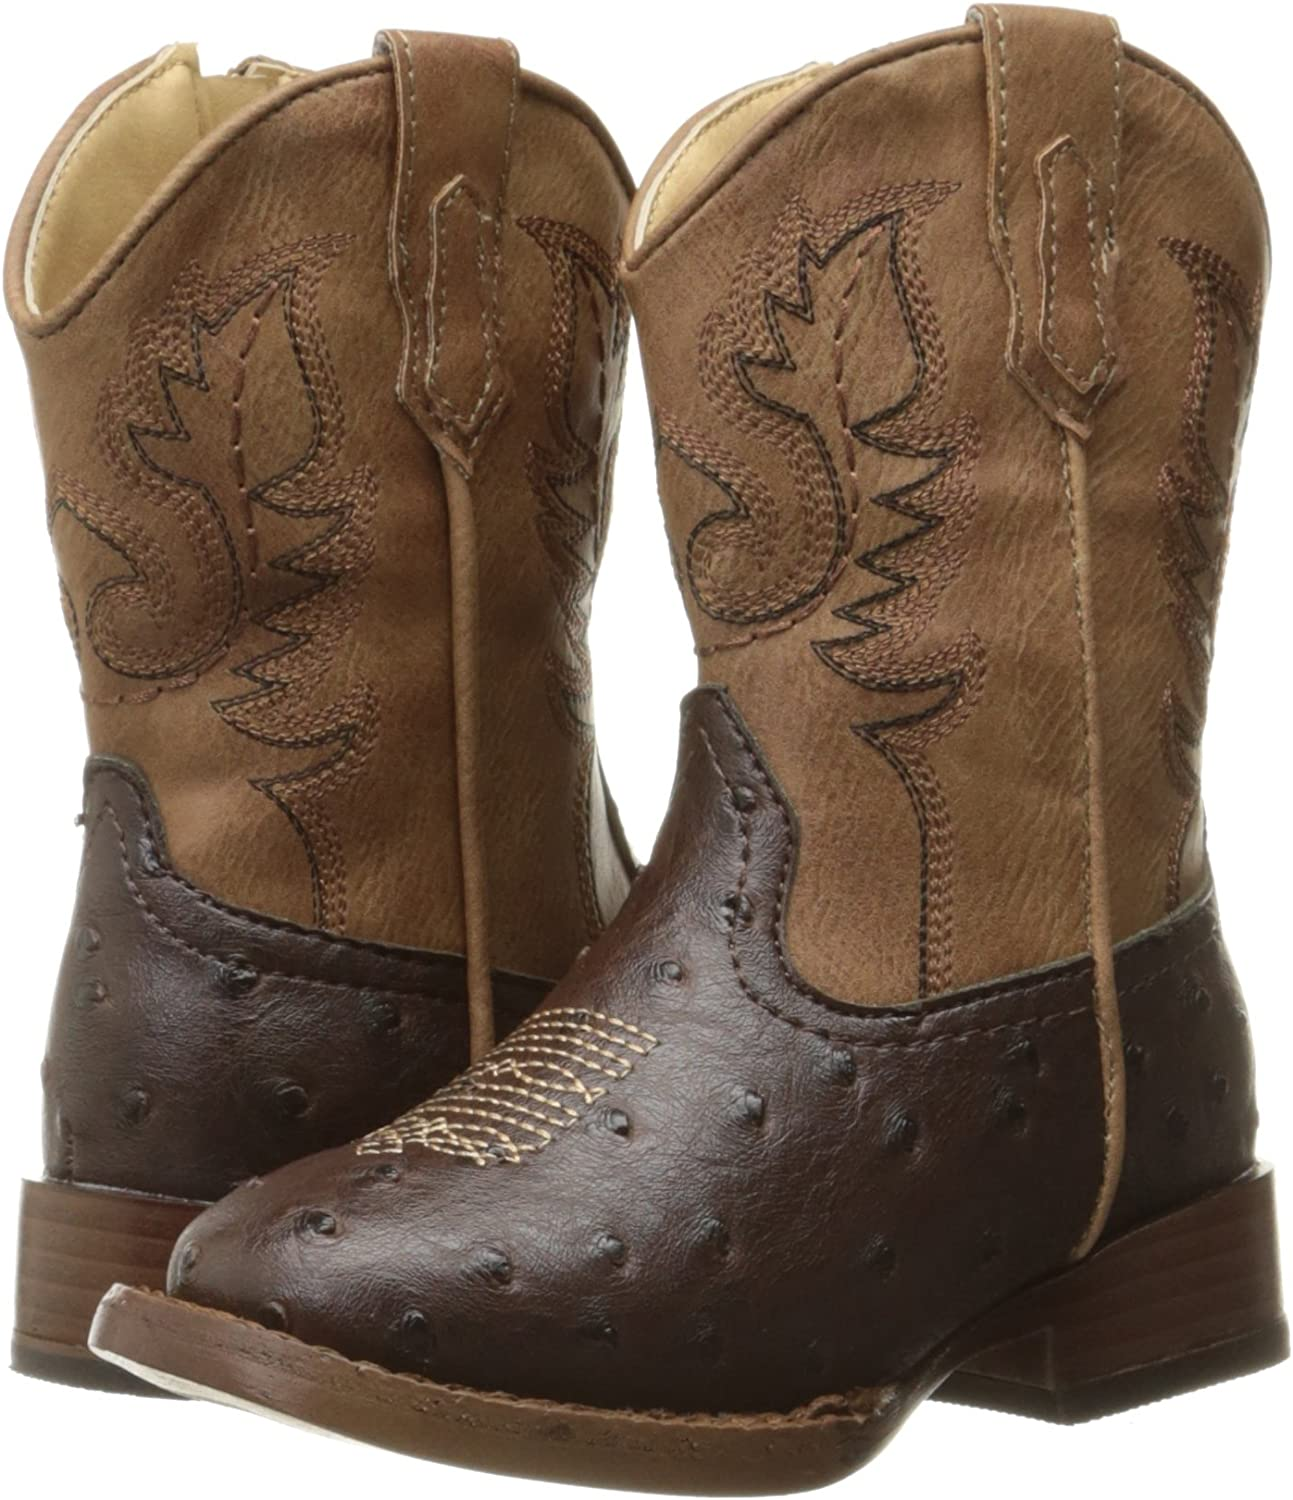 Roper Cowboy Cool Western Boot Toddler